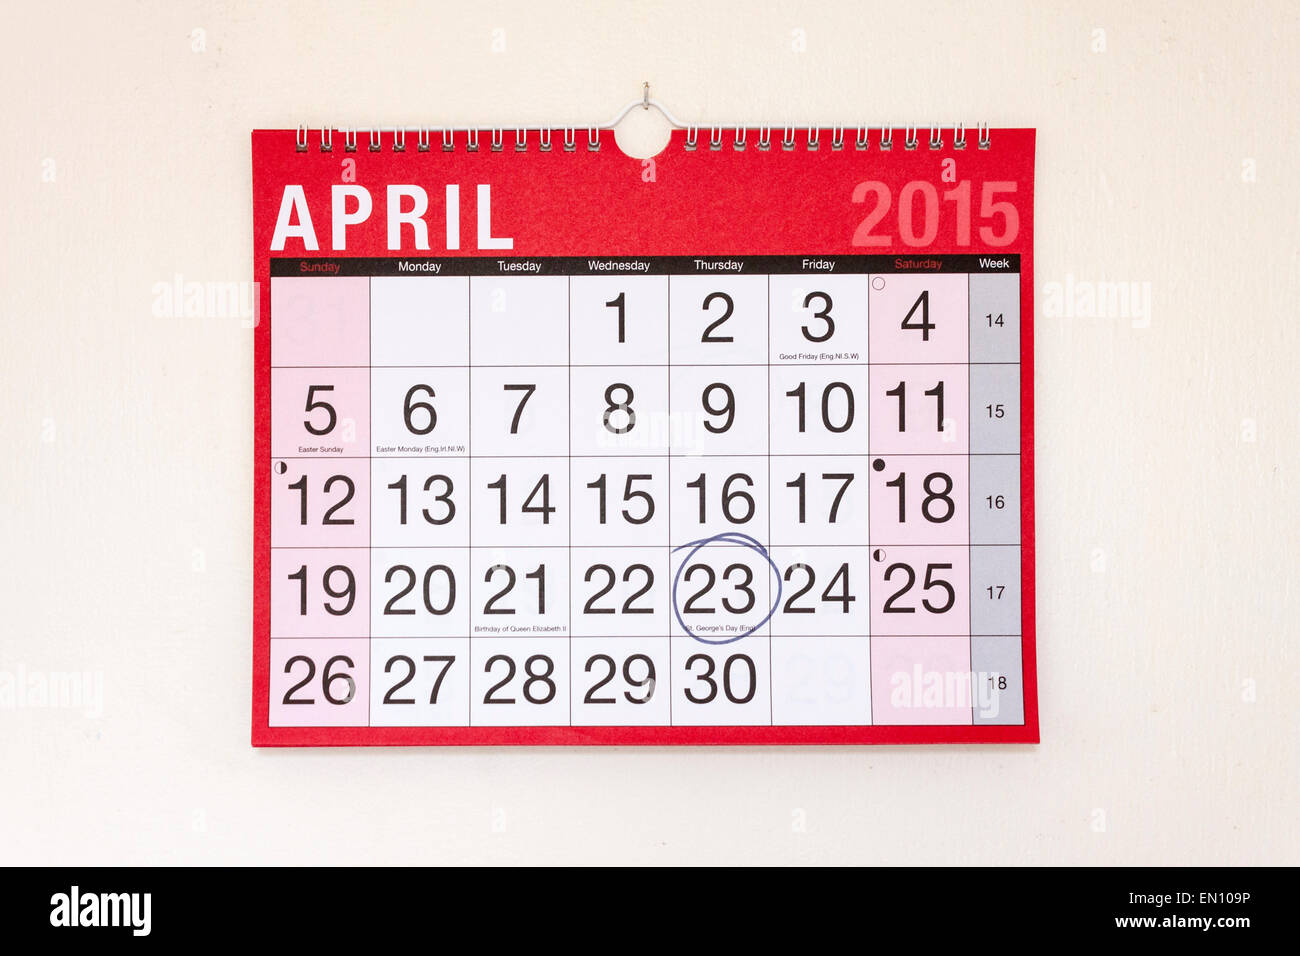 Monthly wall calendar April 2015, St George's Day circled - Stock Image